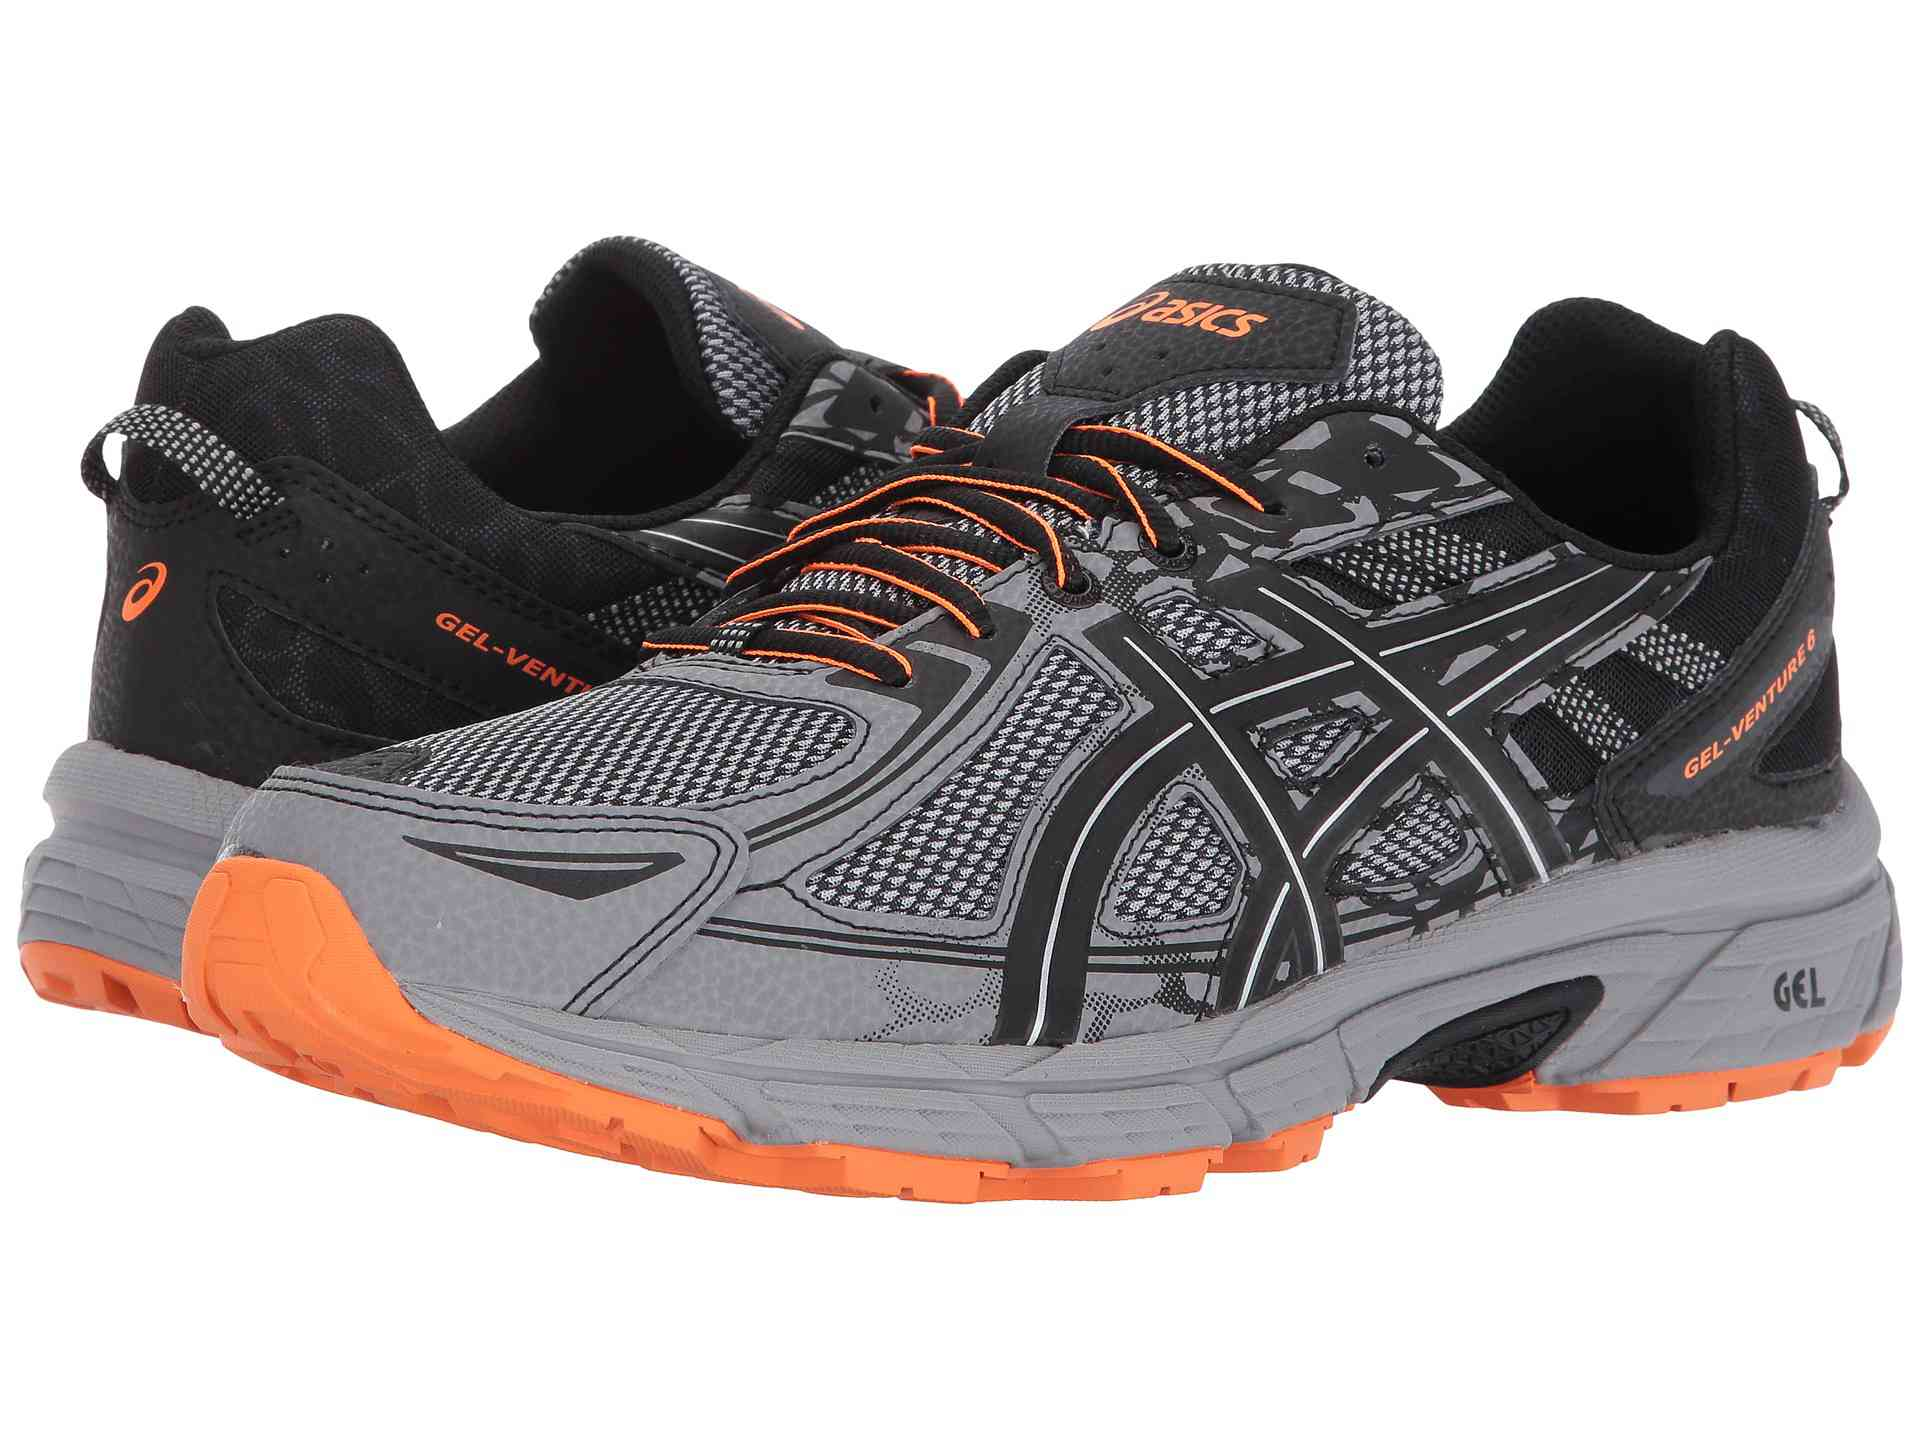 champán instinto Susurro  The 9 Best Men's Running Shoes for Plantar Fasciitis, According to a  Running Coach